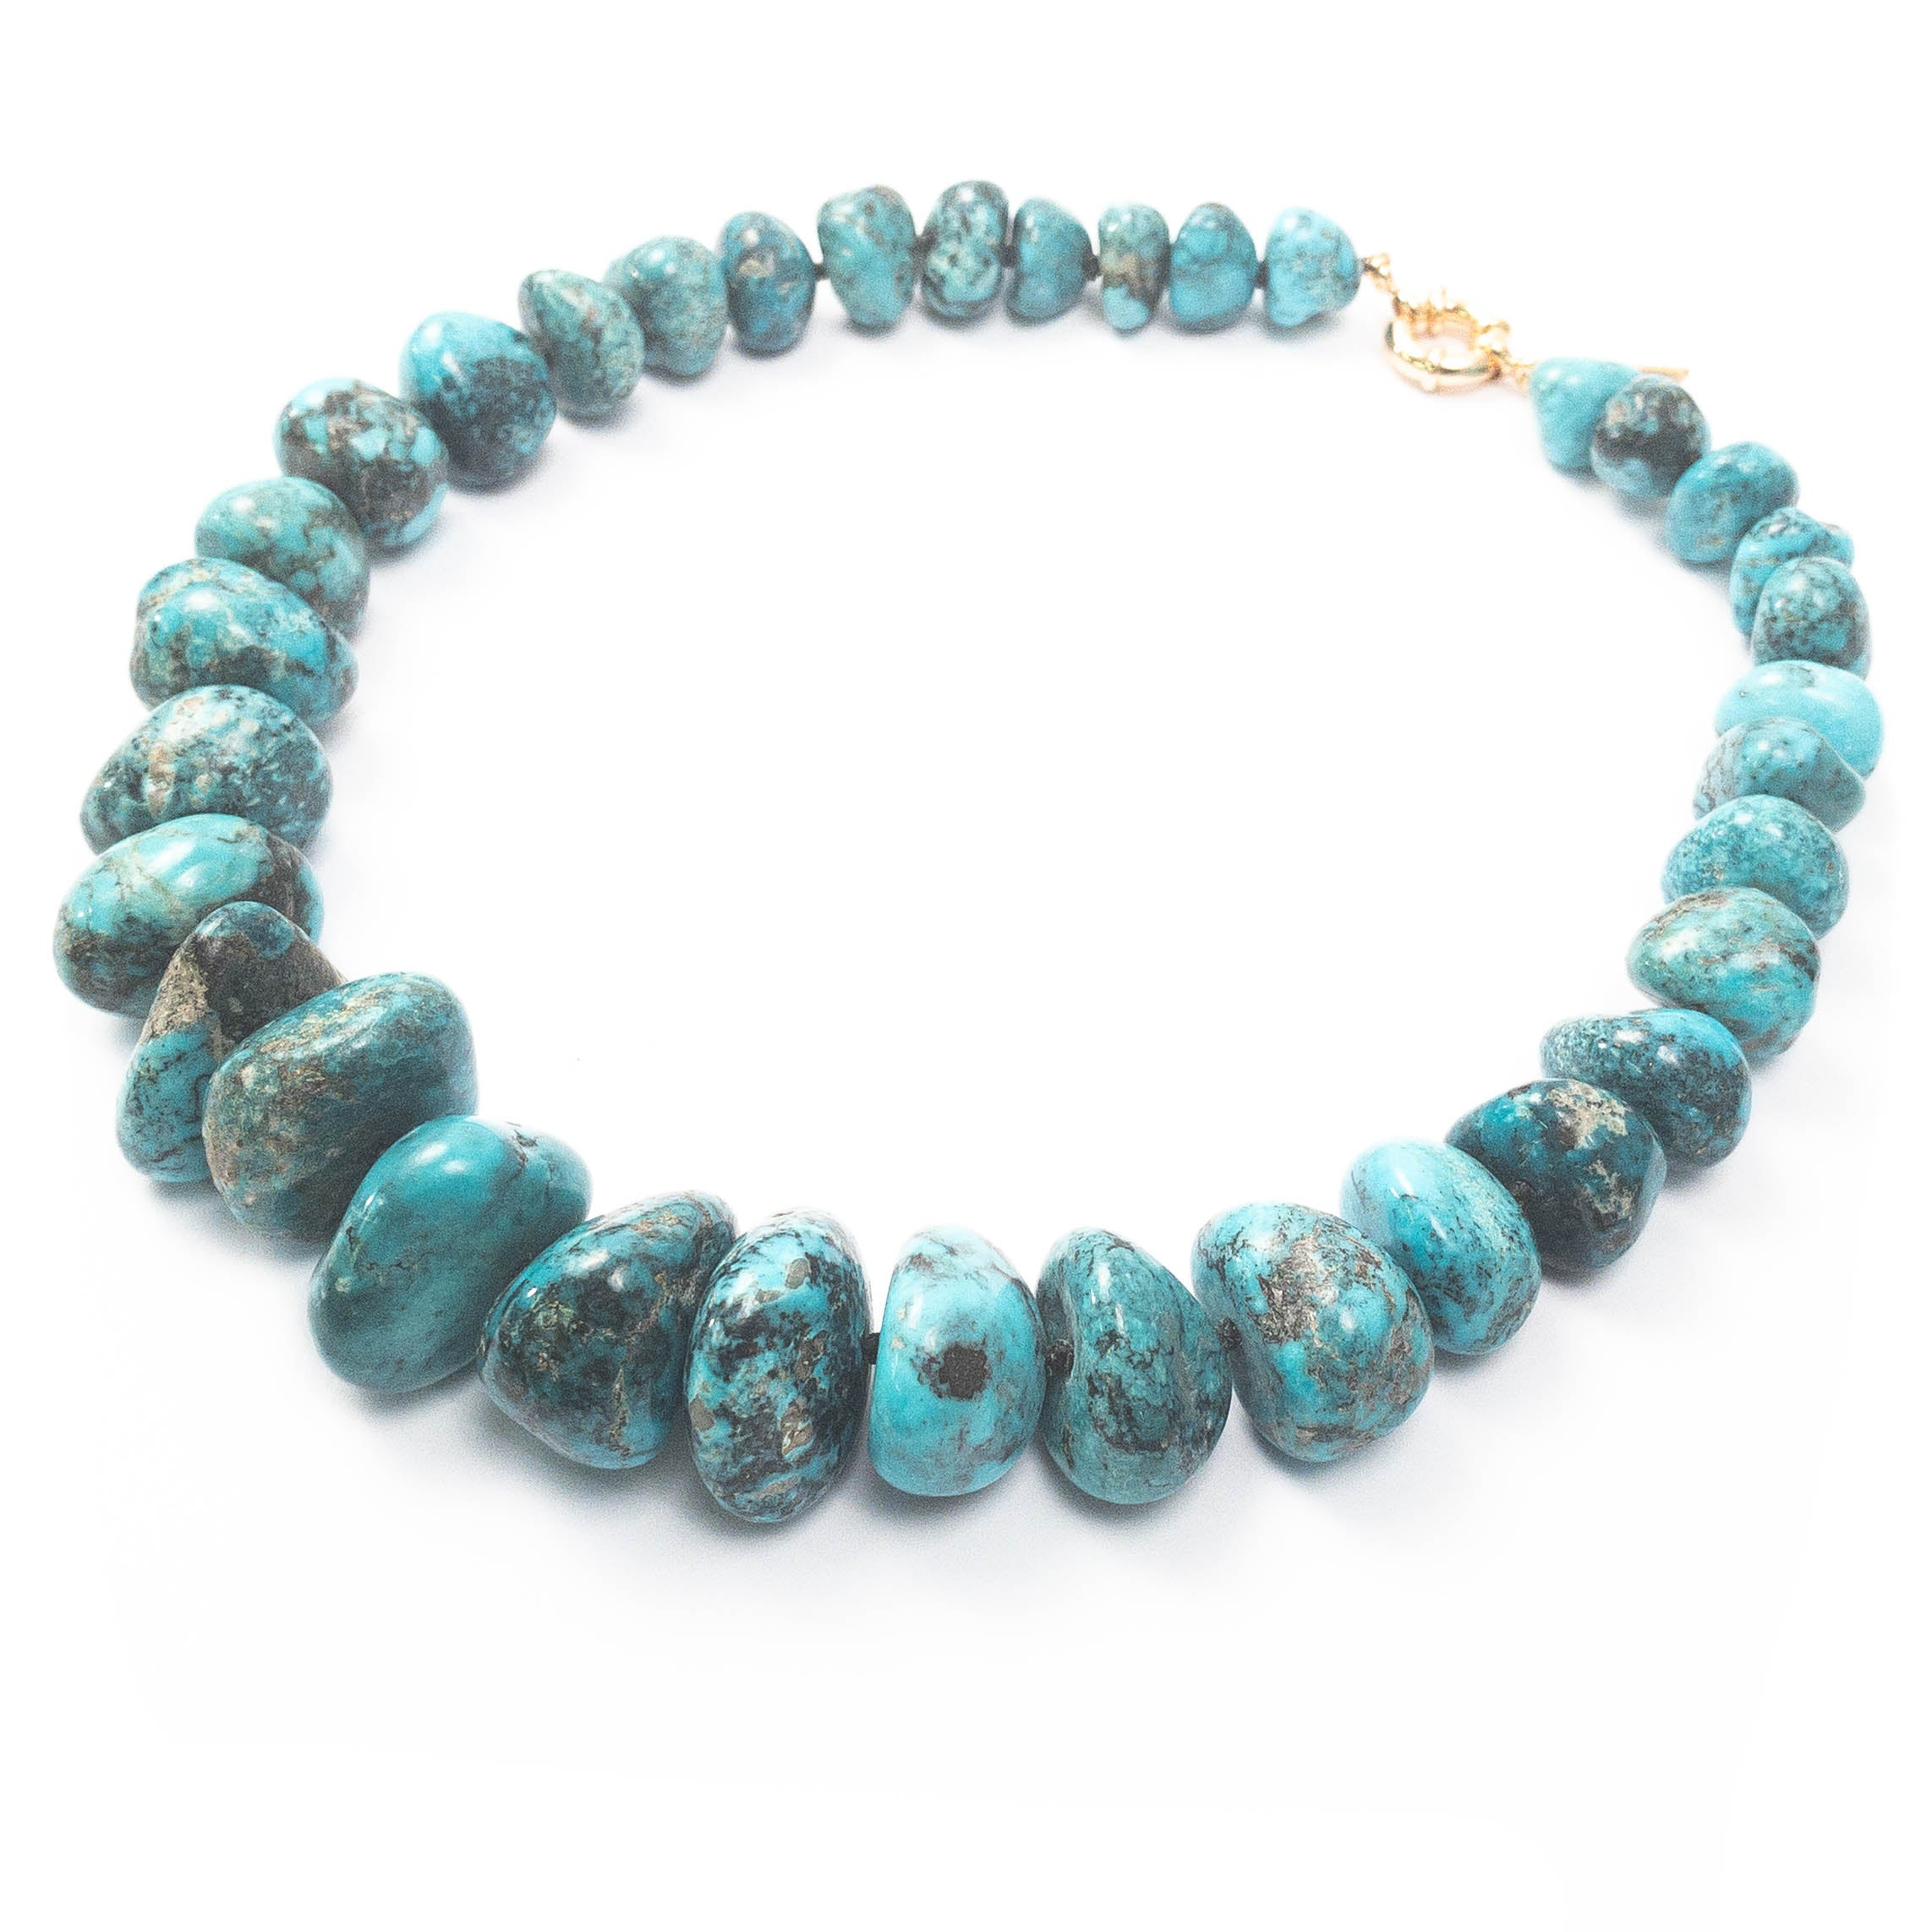 AAA Quality Undyed Mexican Nacozari Turquoise Nugget Necklace